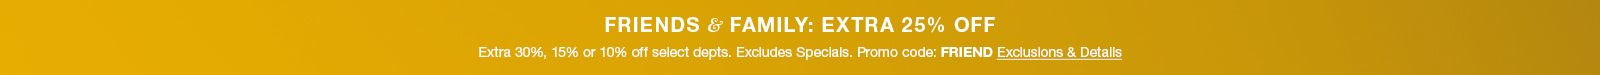 Friends and Family; Extra 25 percent Off, Extra 30 percent, 15 percent or 10 percent off select department, Excludes Specials Promo code: Friend Exclusions and Details